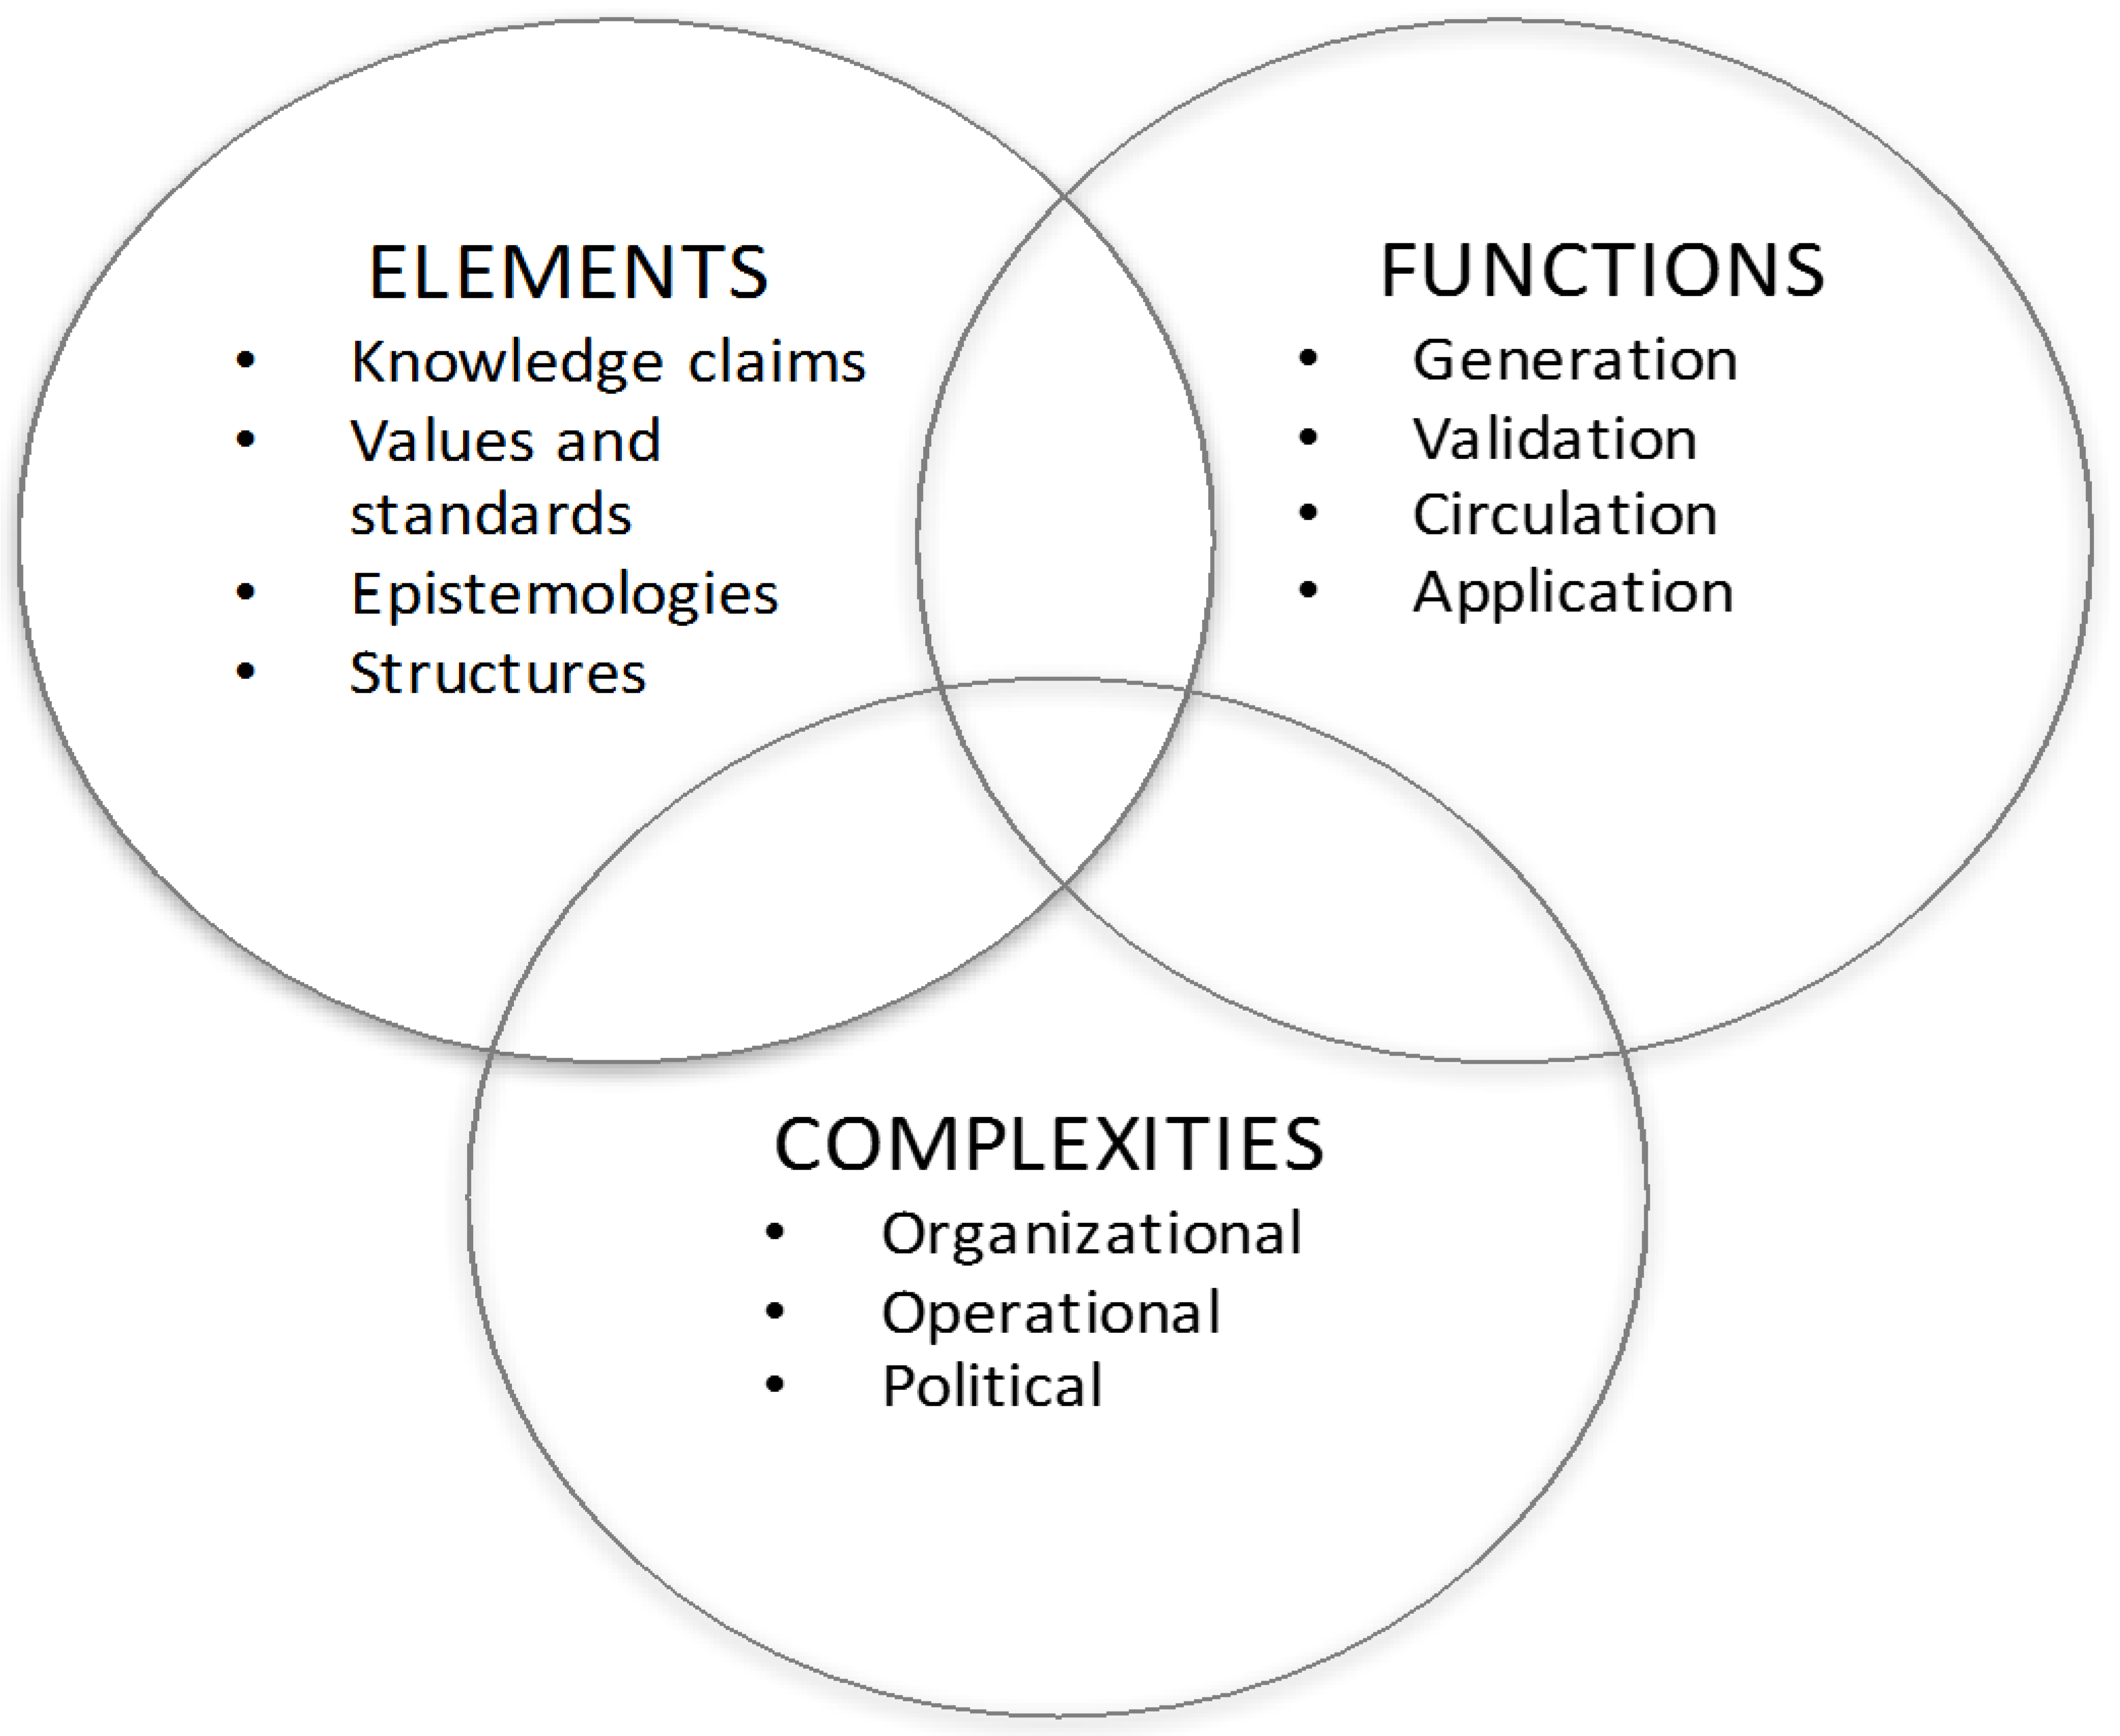 components of knowledge systems Jennex identifying the components of a knowledge management strategy proceedings of the eighteenth americas conference on information systems, seattle, washington, august 9-12, 2012.